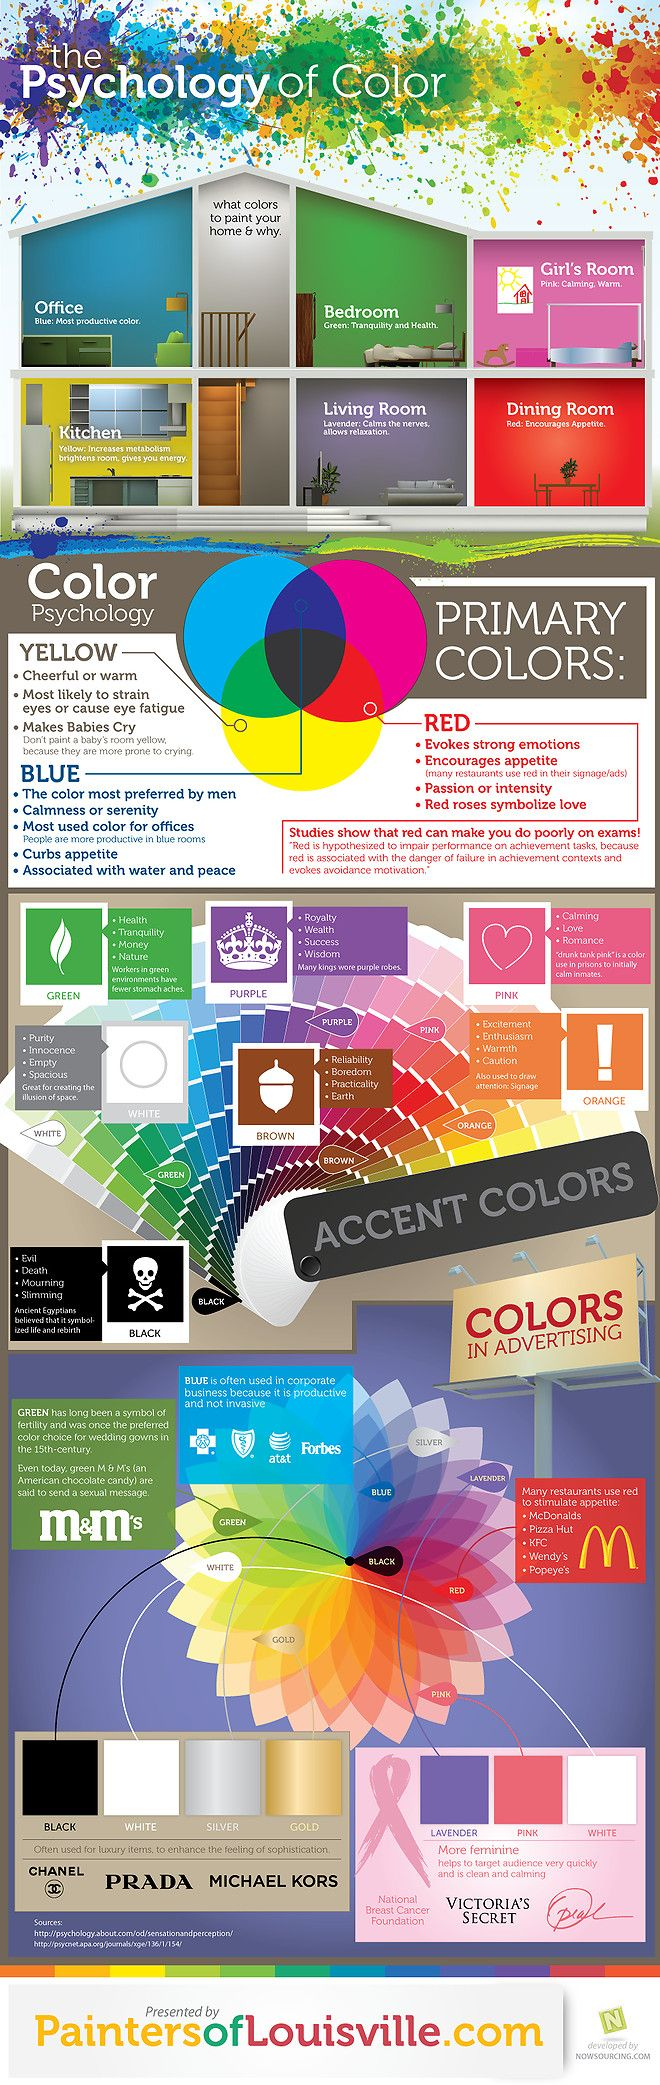 great infographic about the psychology of colour - wanted to paint baby's room yellow, but according to this they are prone to crying with yellow.  Back tot he drawing board! :)